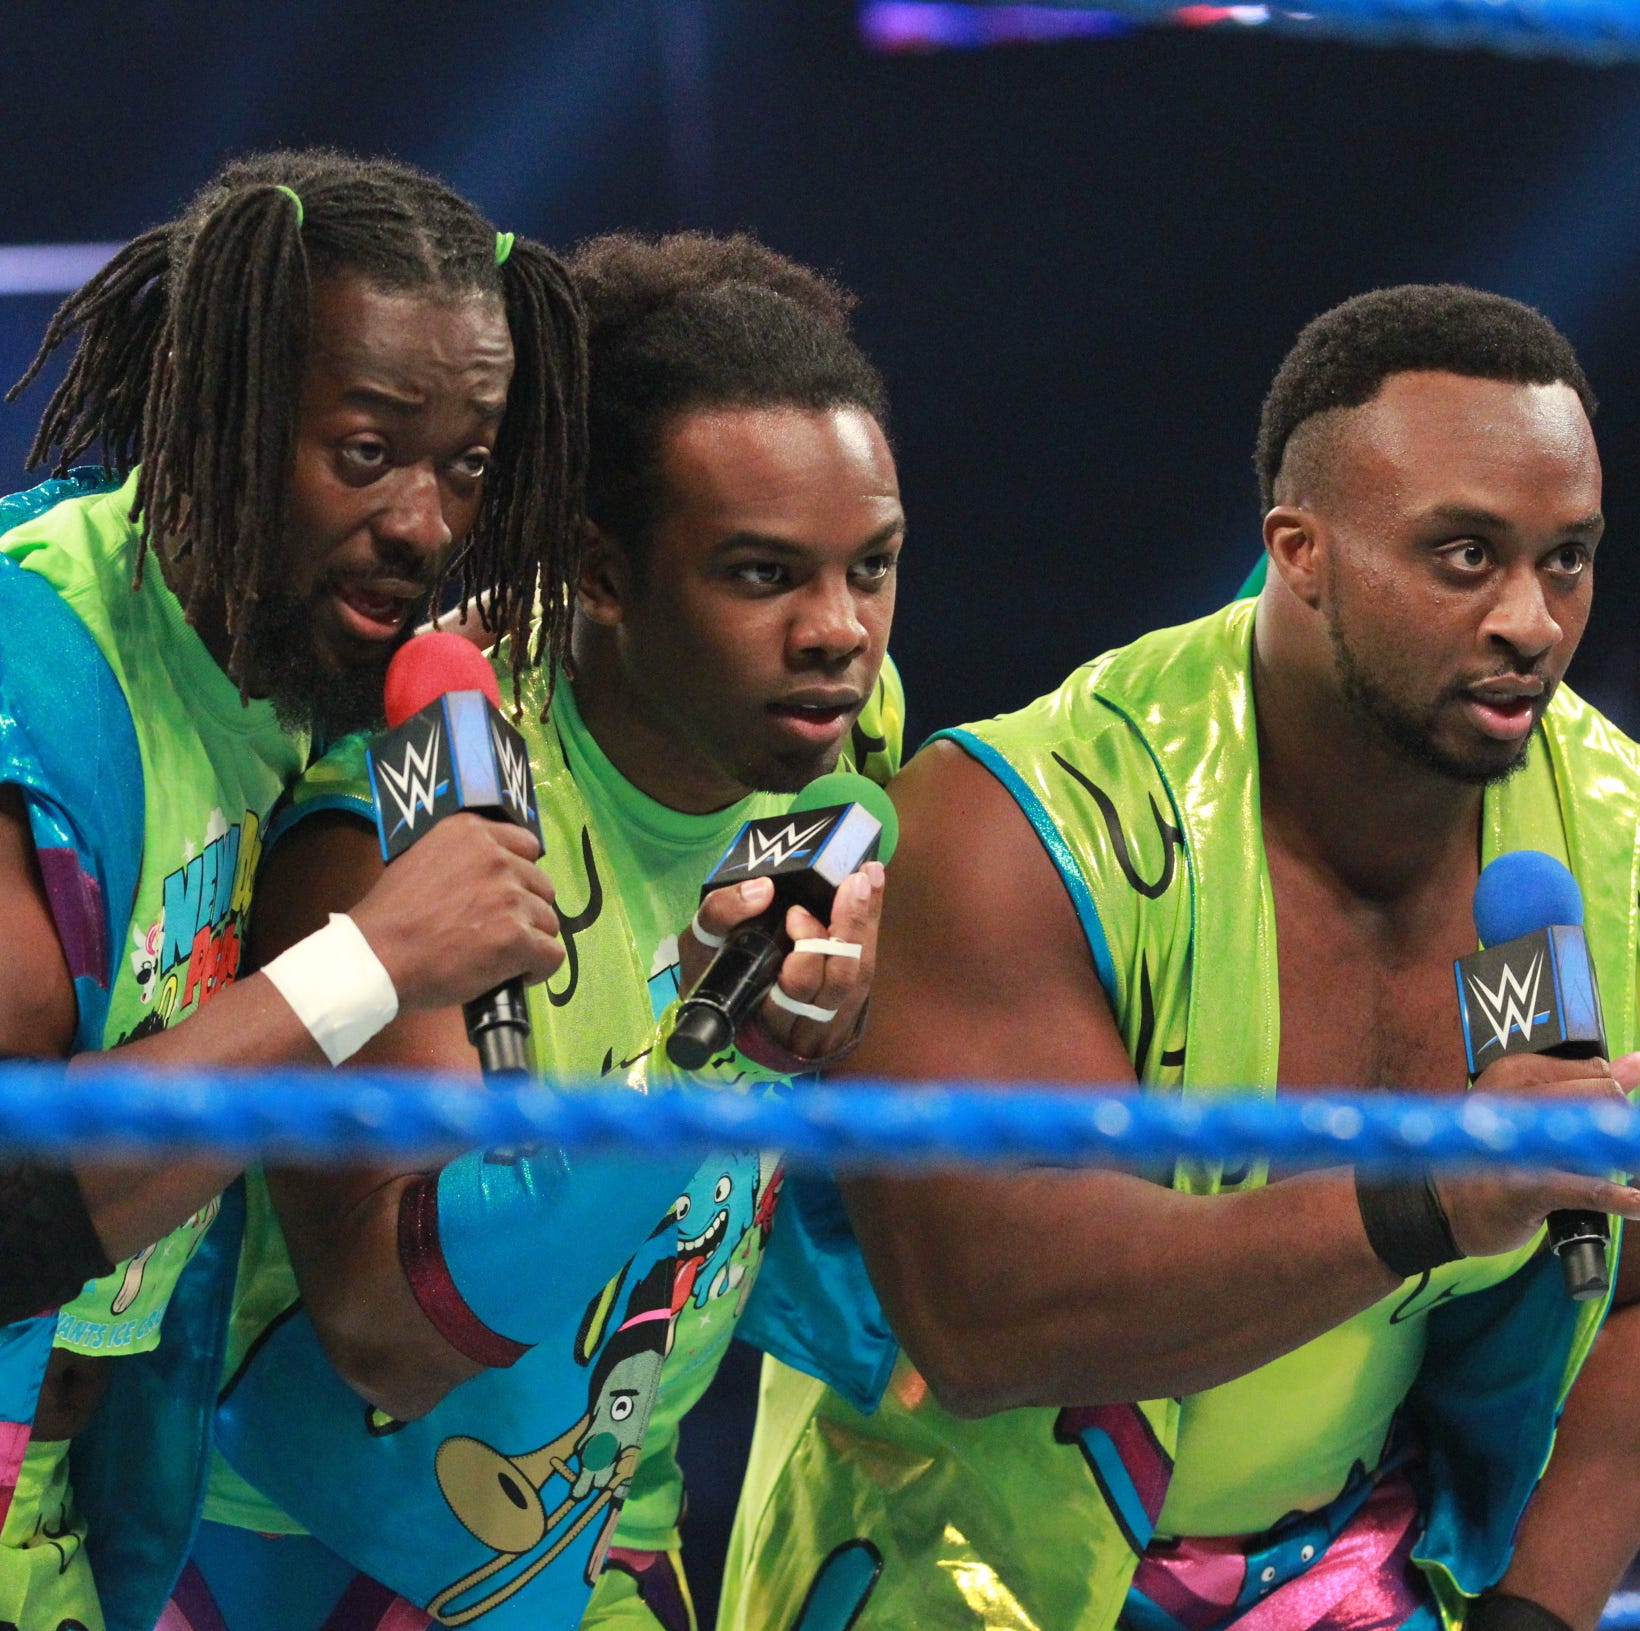 WWE tag team will be featured at Premier Center on Saturday night